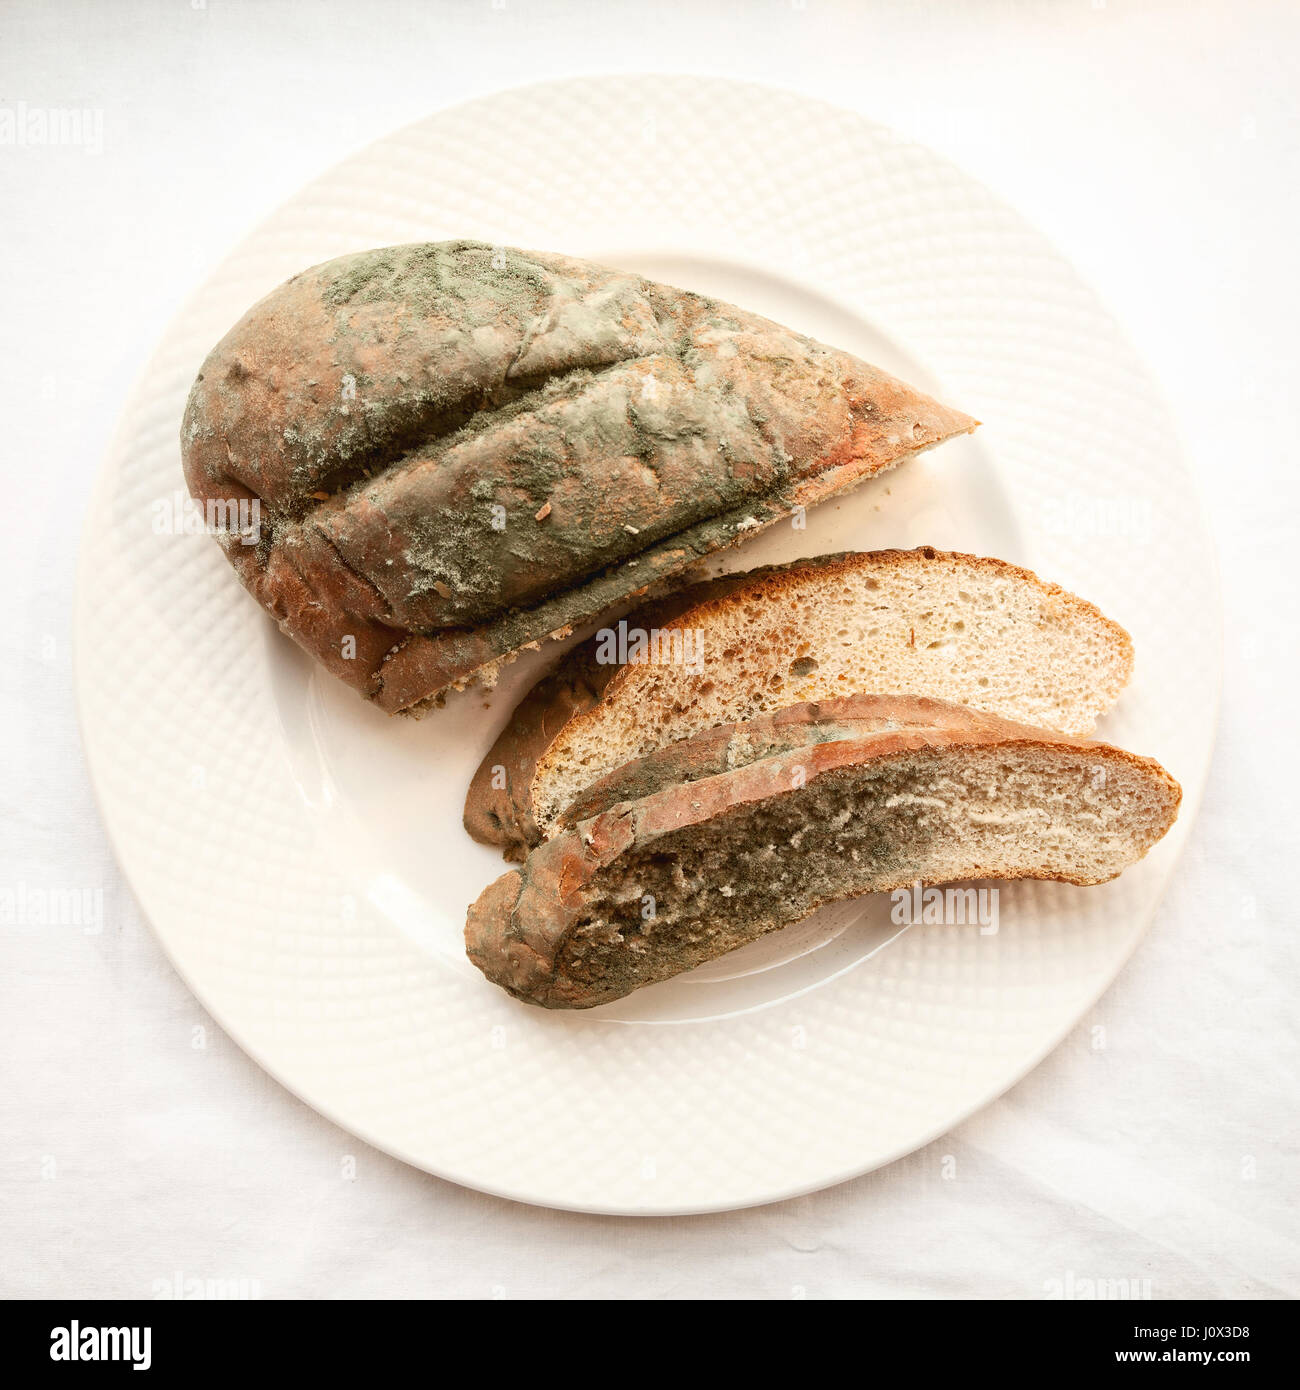 Spoiled cut loaf covered with green mold isolated. Beautiful old moldy bread sliced on a white plate. Expired bakery - Stock Image